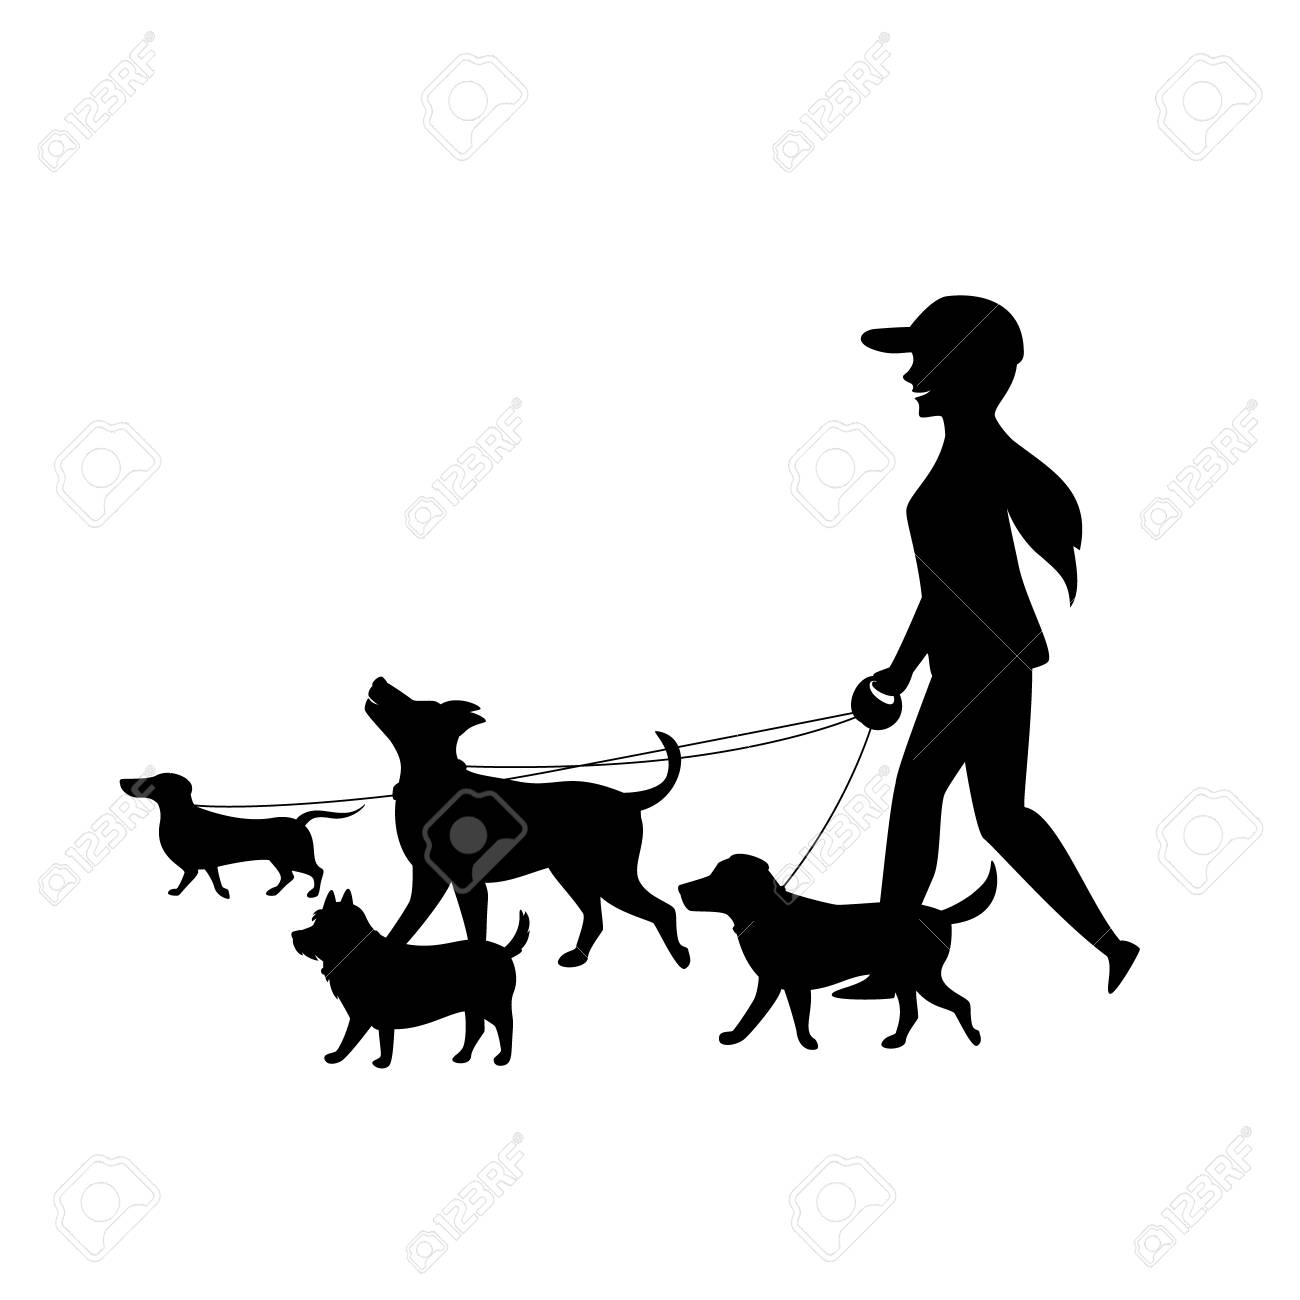 Free Vector Dog Sit Silhouettes, HD Png Download - kindpng